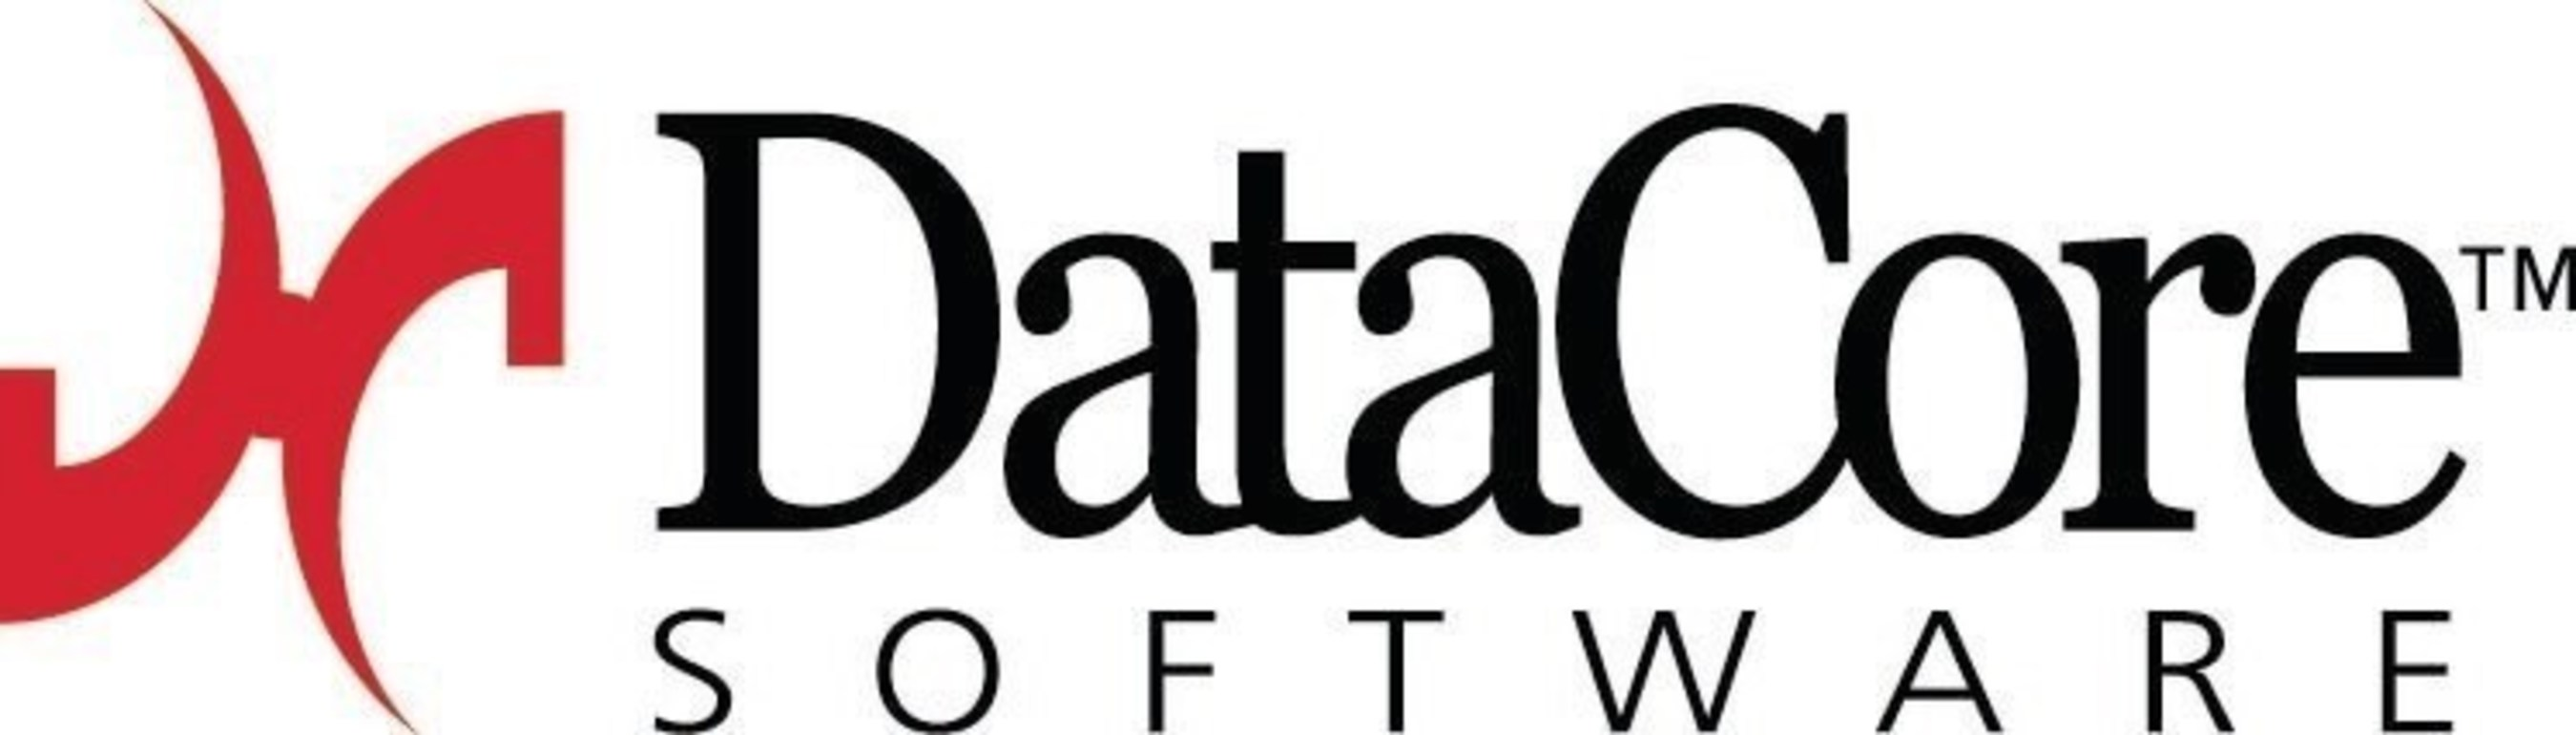 DataCore Software, Ft. Lauderdale, FL